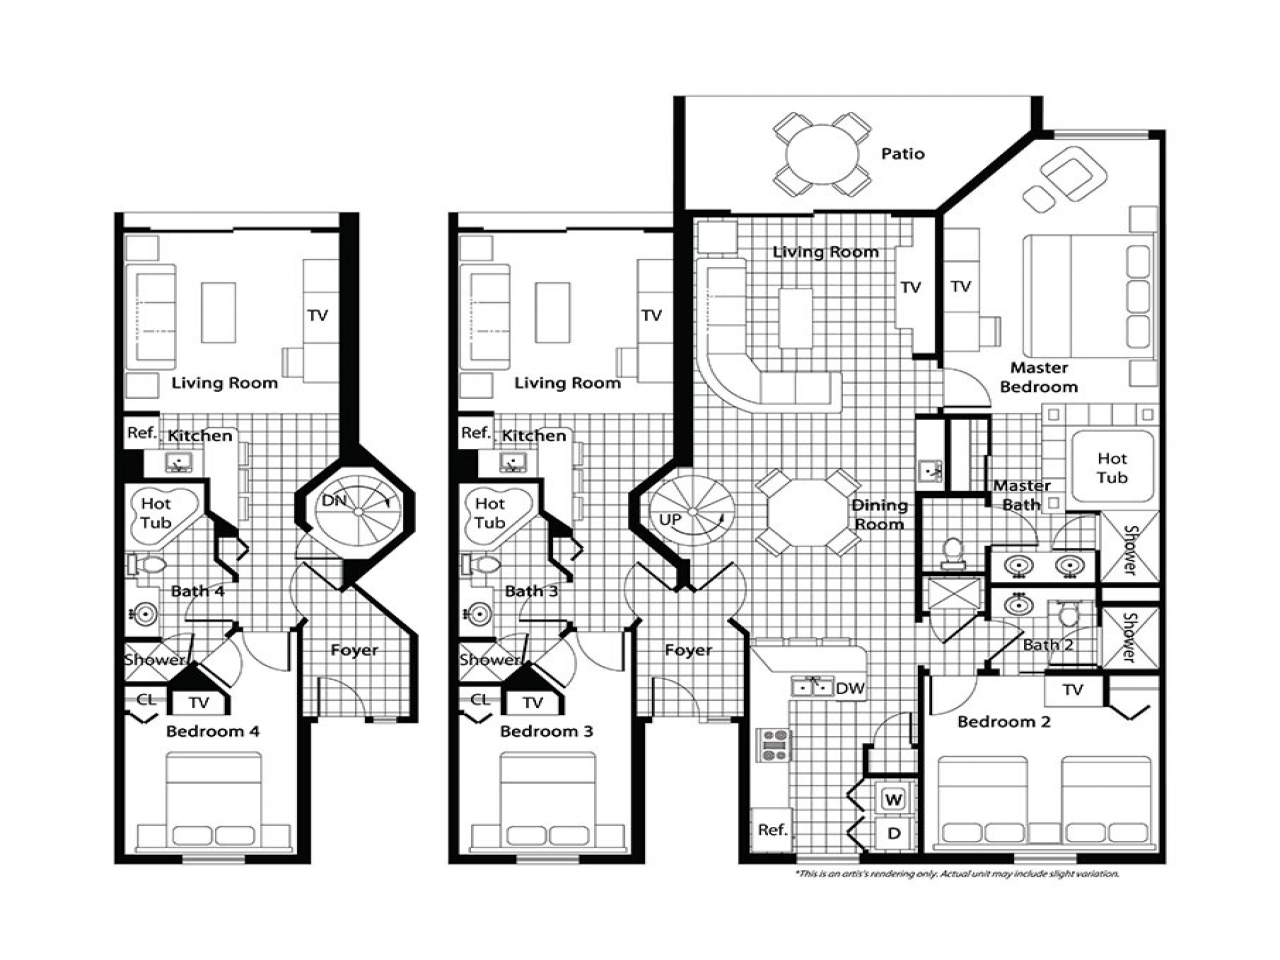 2 bedroom villa floor plans 28 images villa second for Pleasure p bedroom floor lyrics